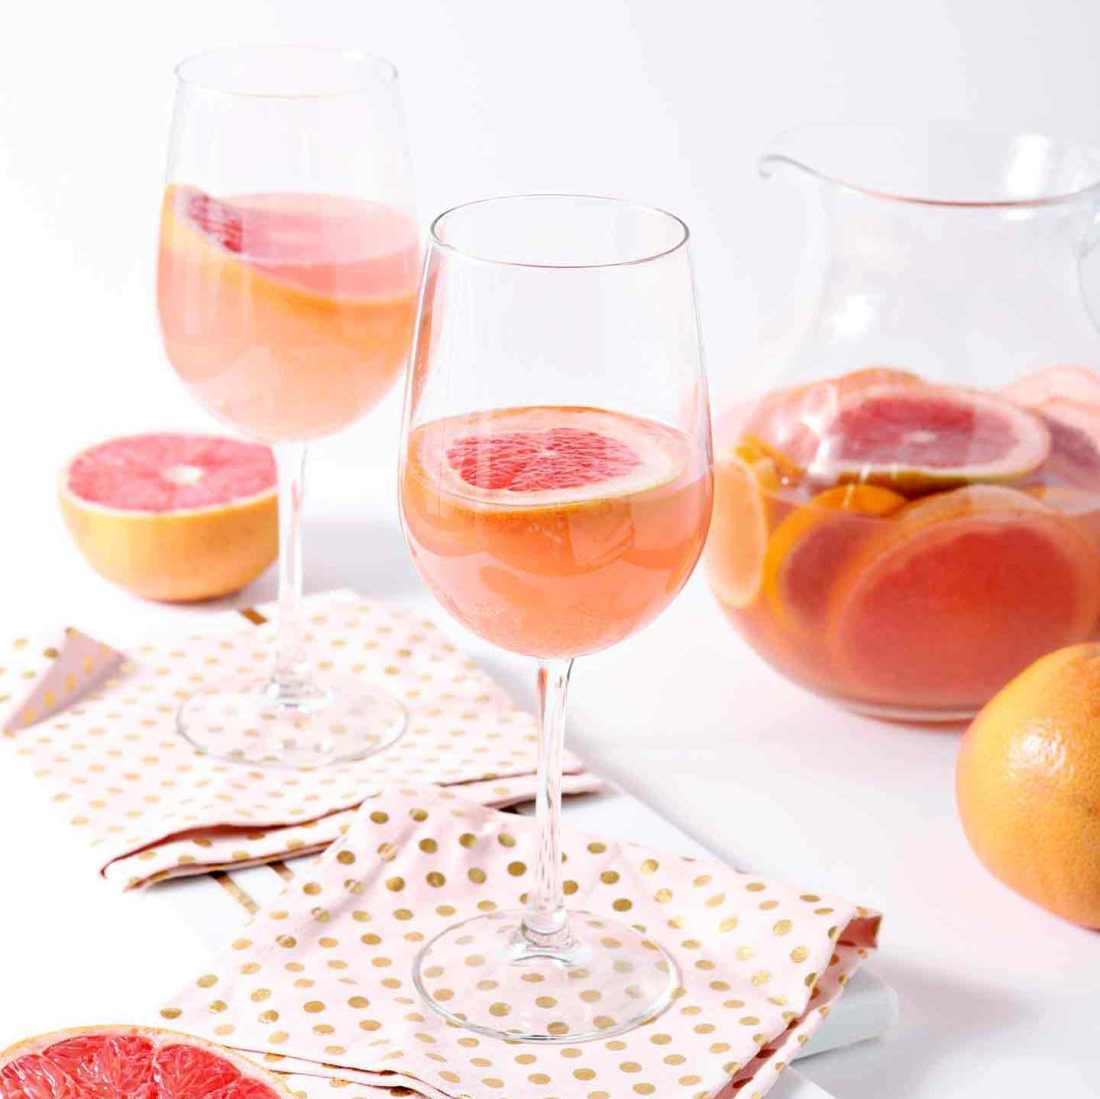 Put your pre-summer diet grapefruit to extra good use this month! You've gotta try this Sparkling Grapefruit Sangria from The Speckled Palate!